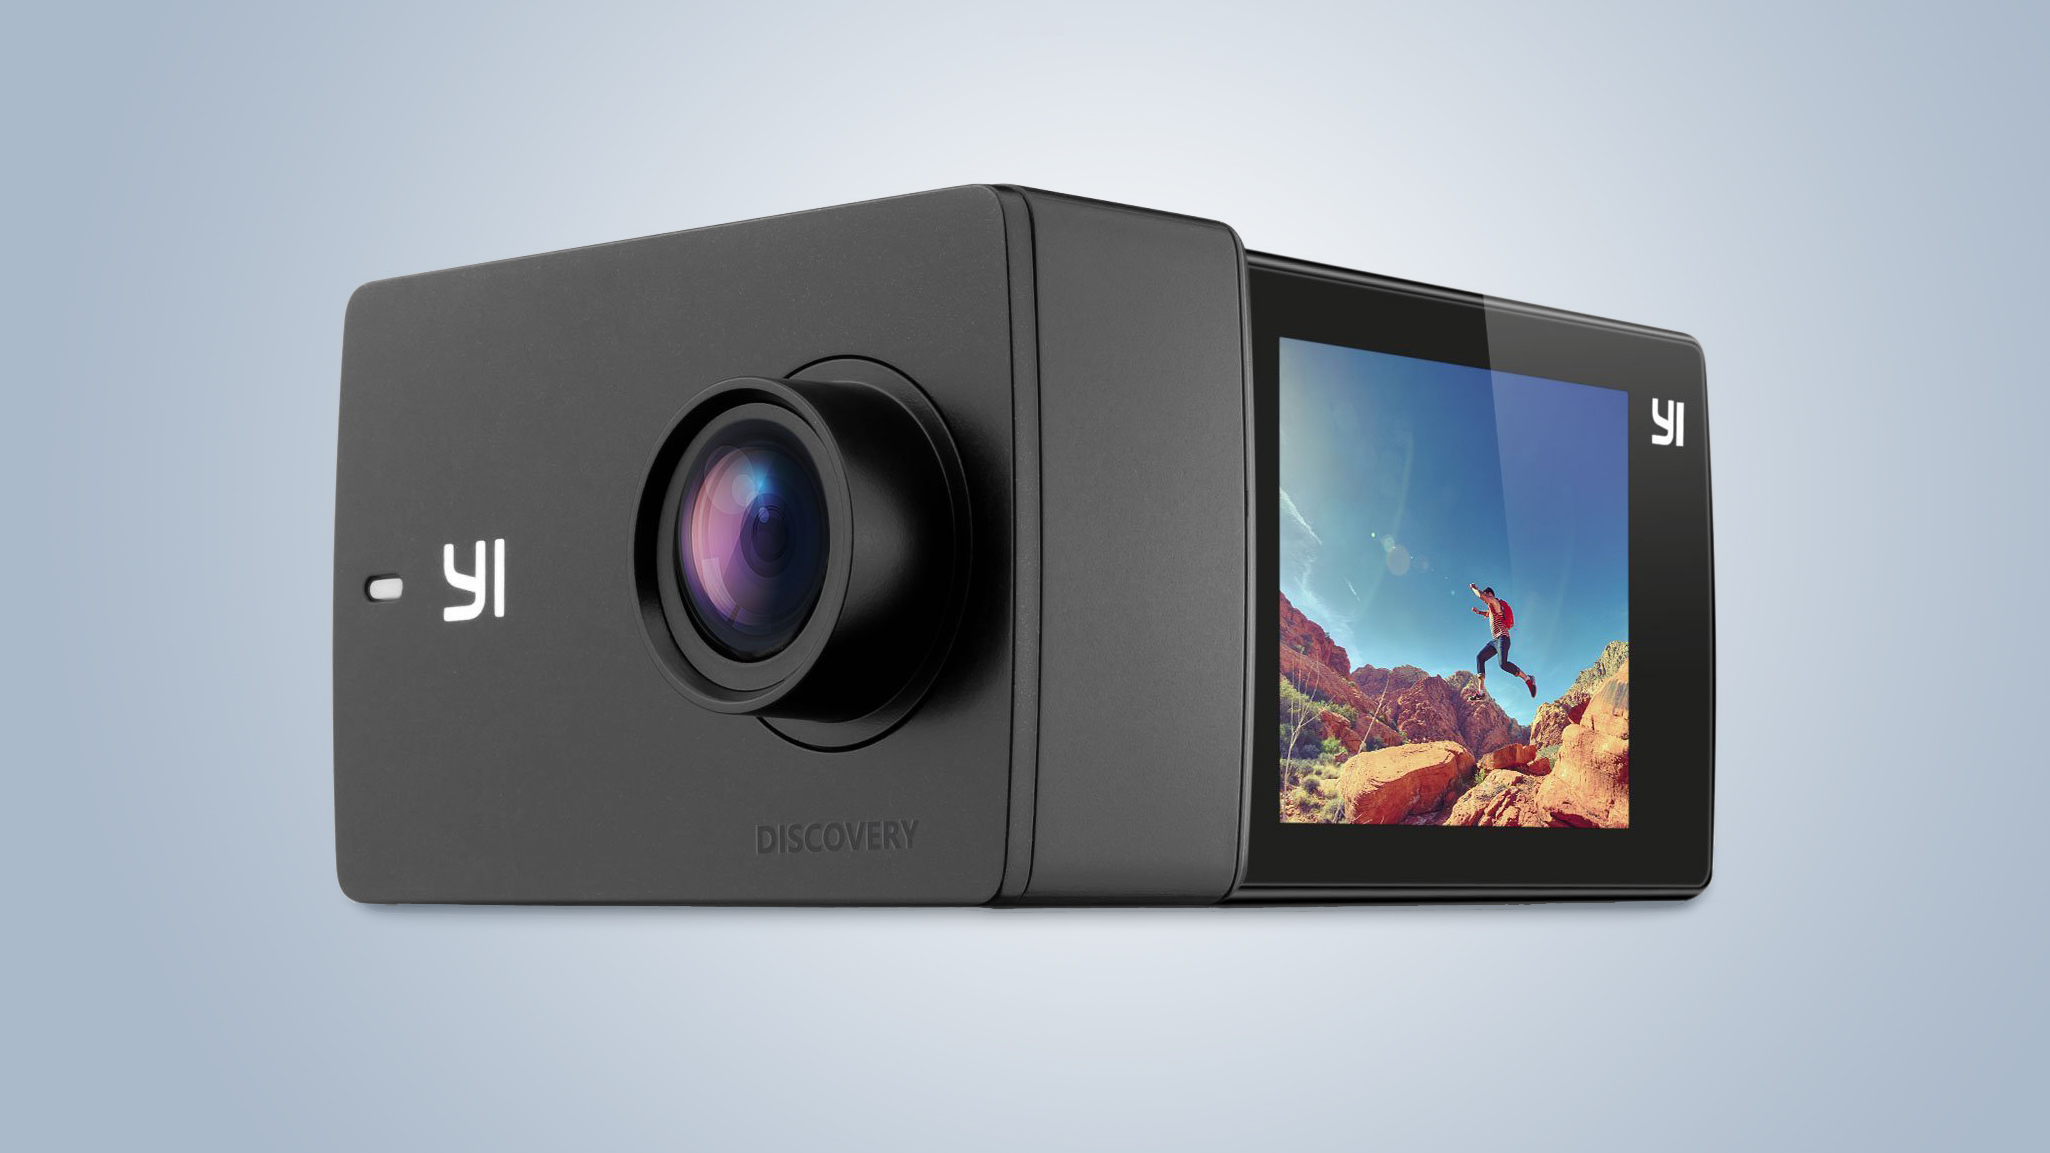 Yi Discovery Action Camera review